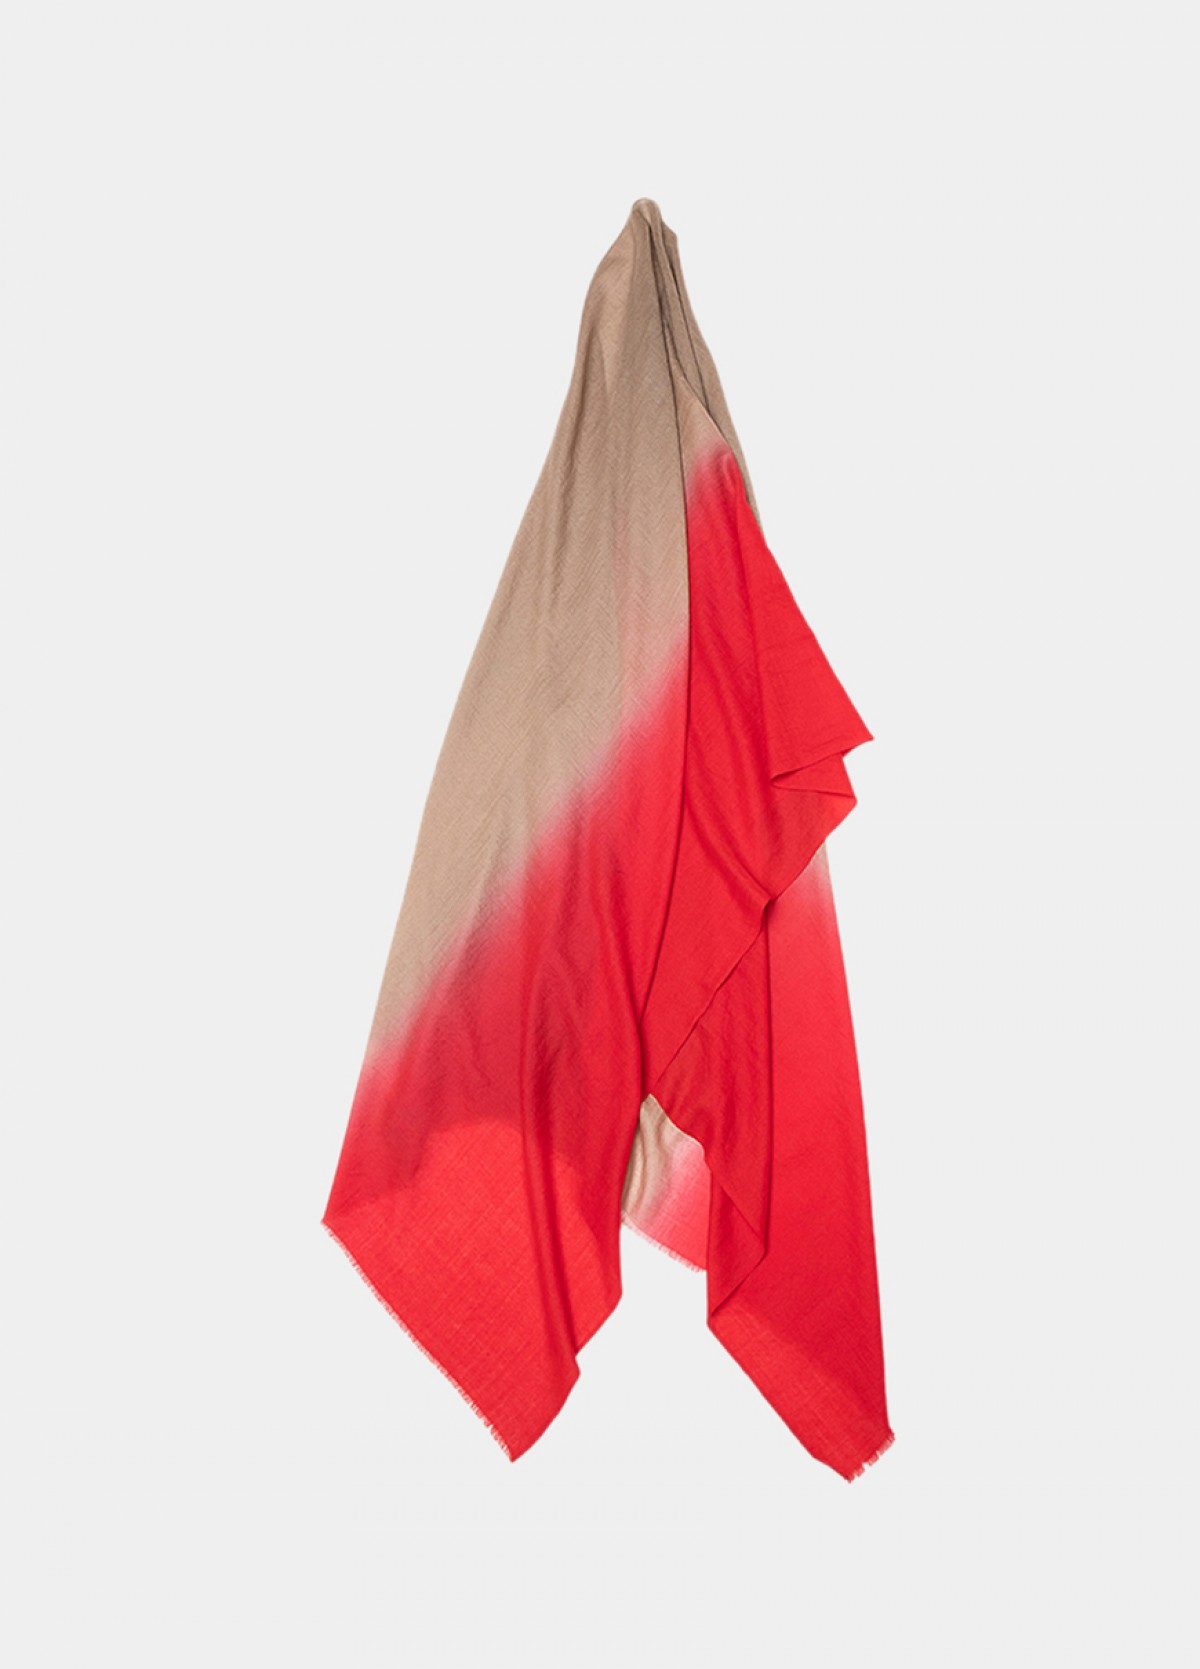 The Red Cashmere Stole